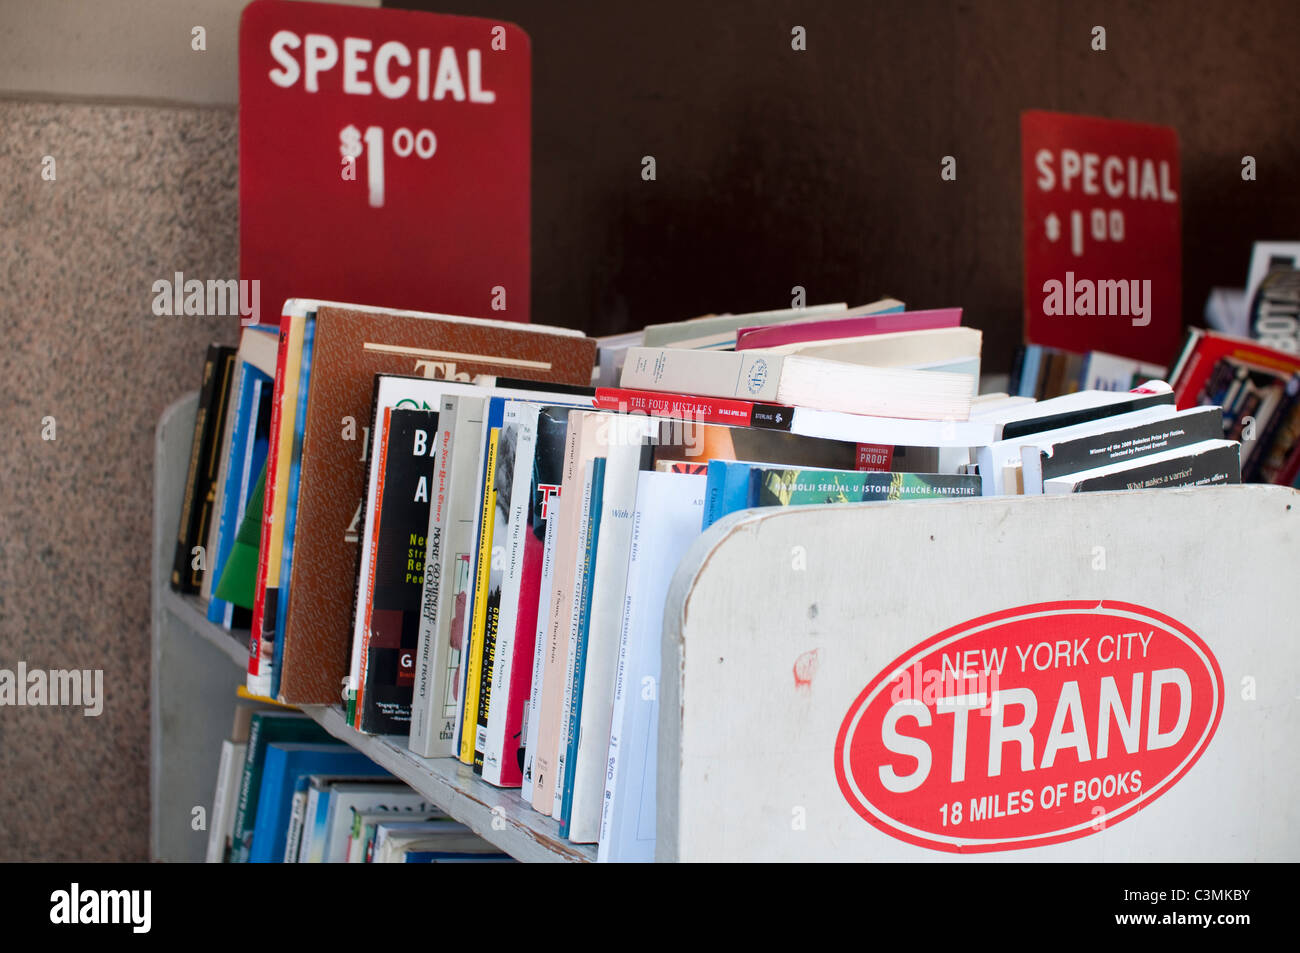 $1 books for sale at the Strand bookshop in the East Village in New York City. - Stock Image